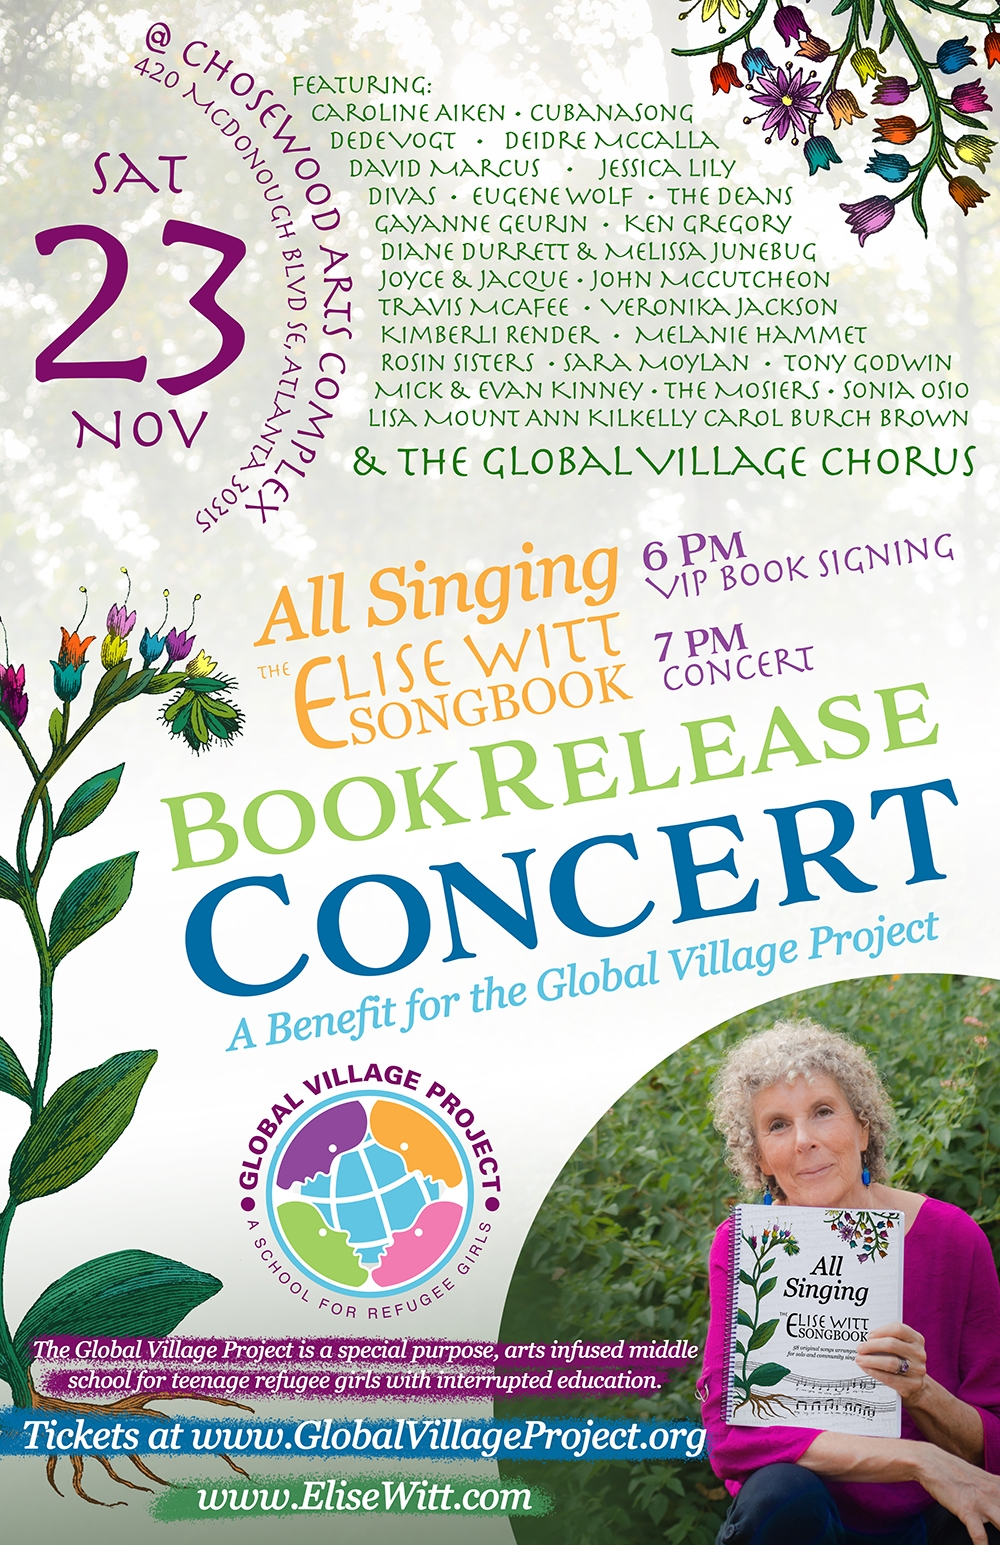 All Singing: The Elise Witt Songbook Release Concert